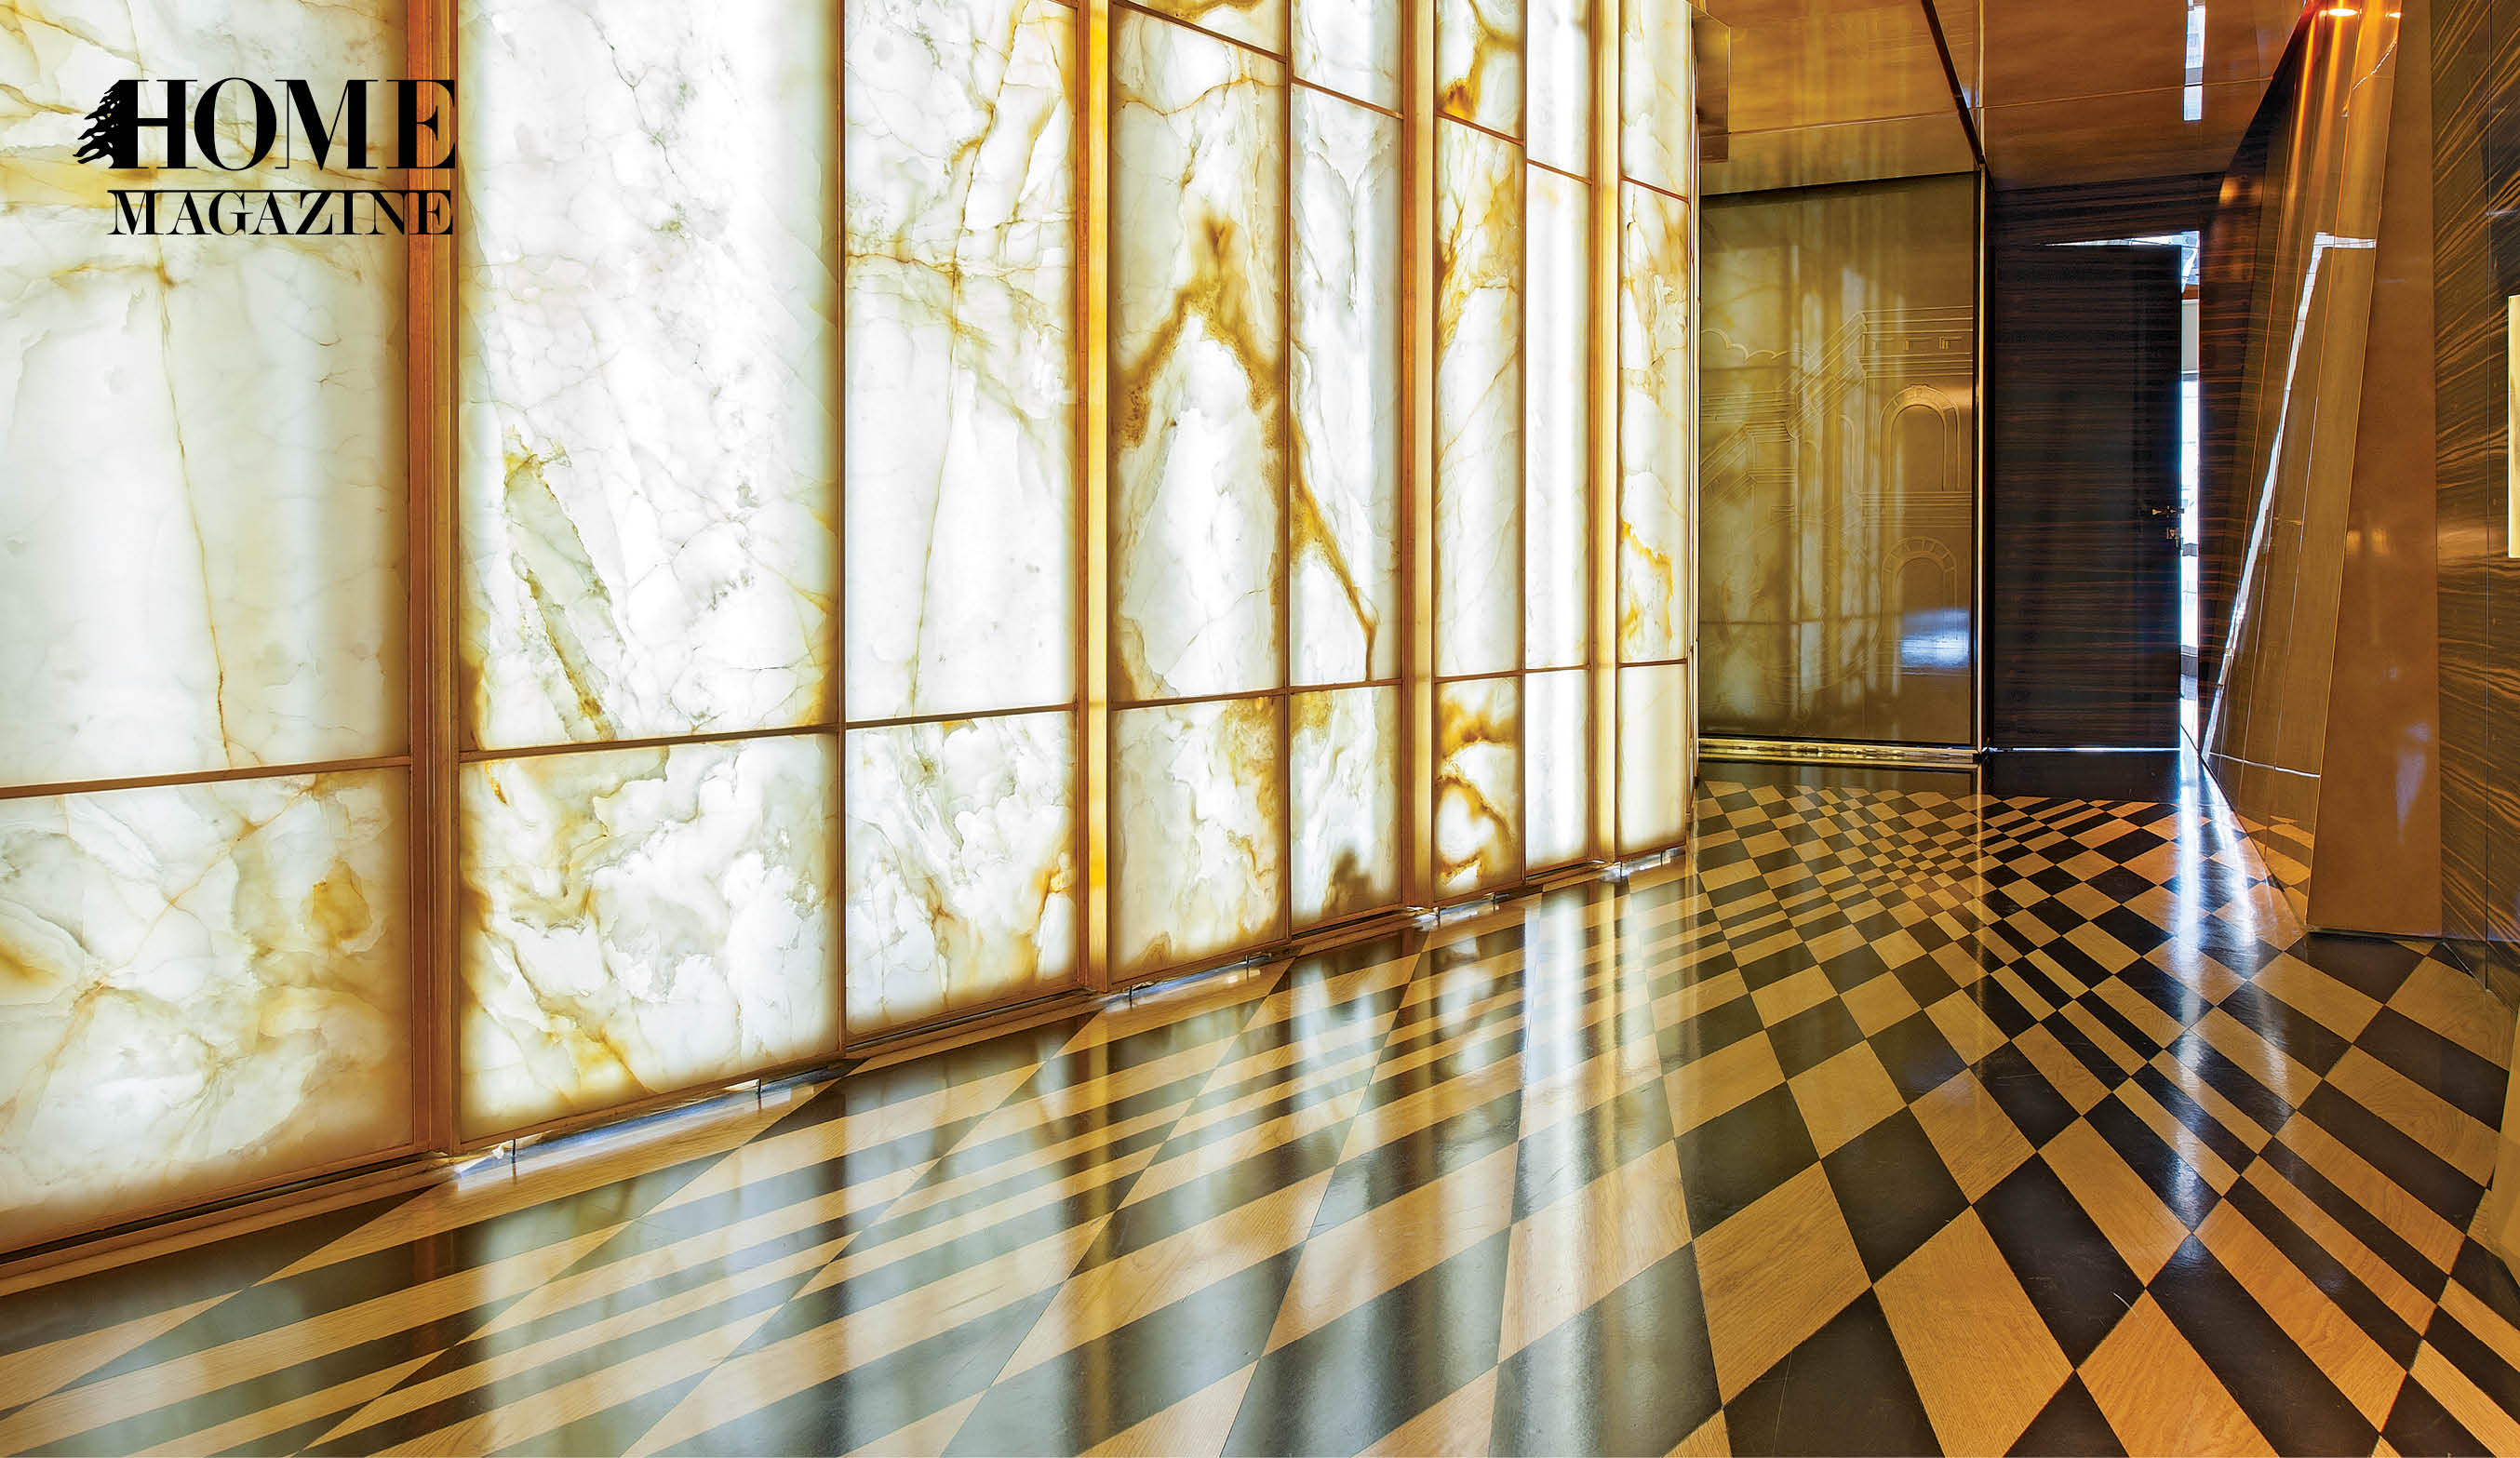 Patterned brown and orange floor with glass wall